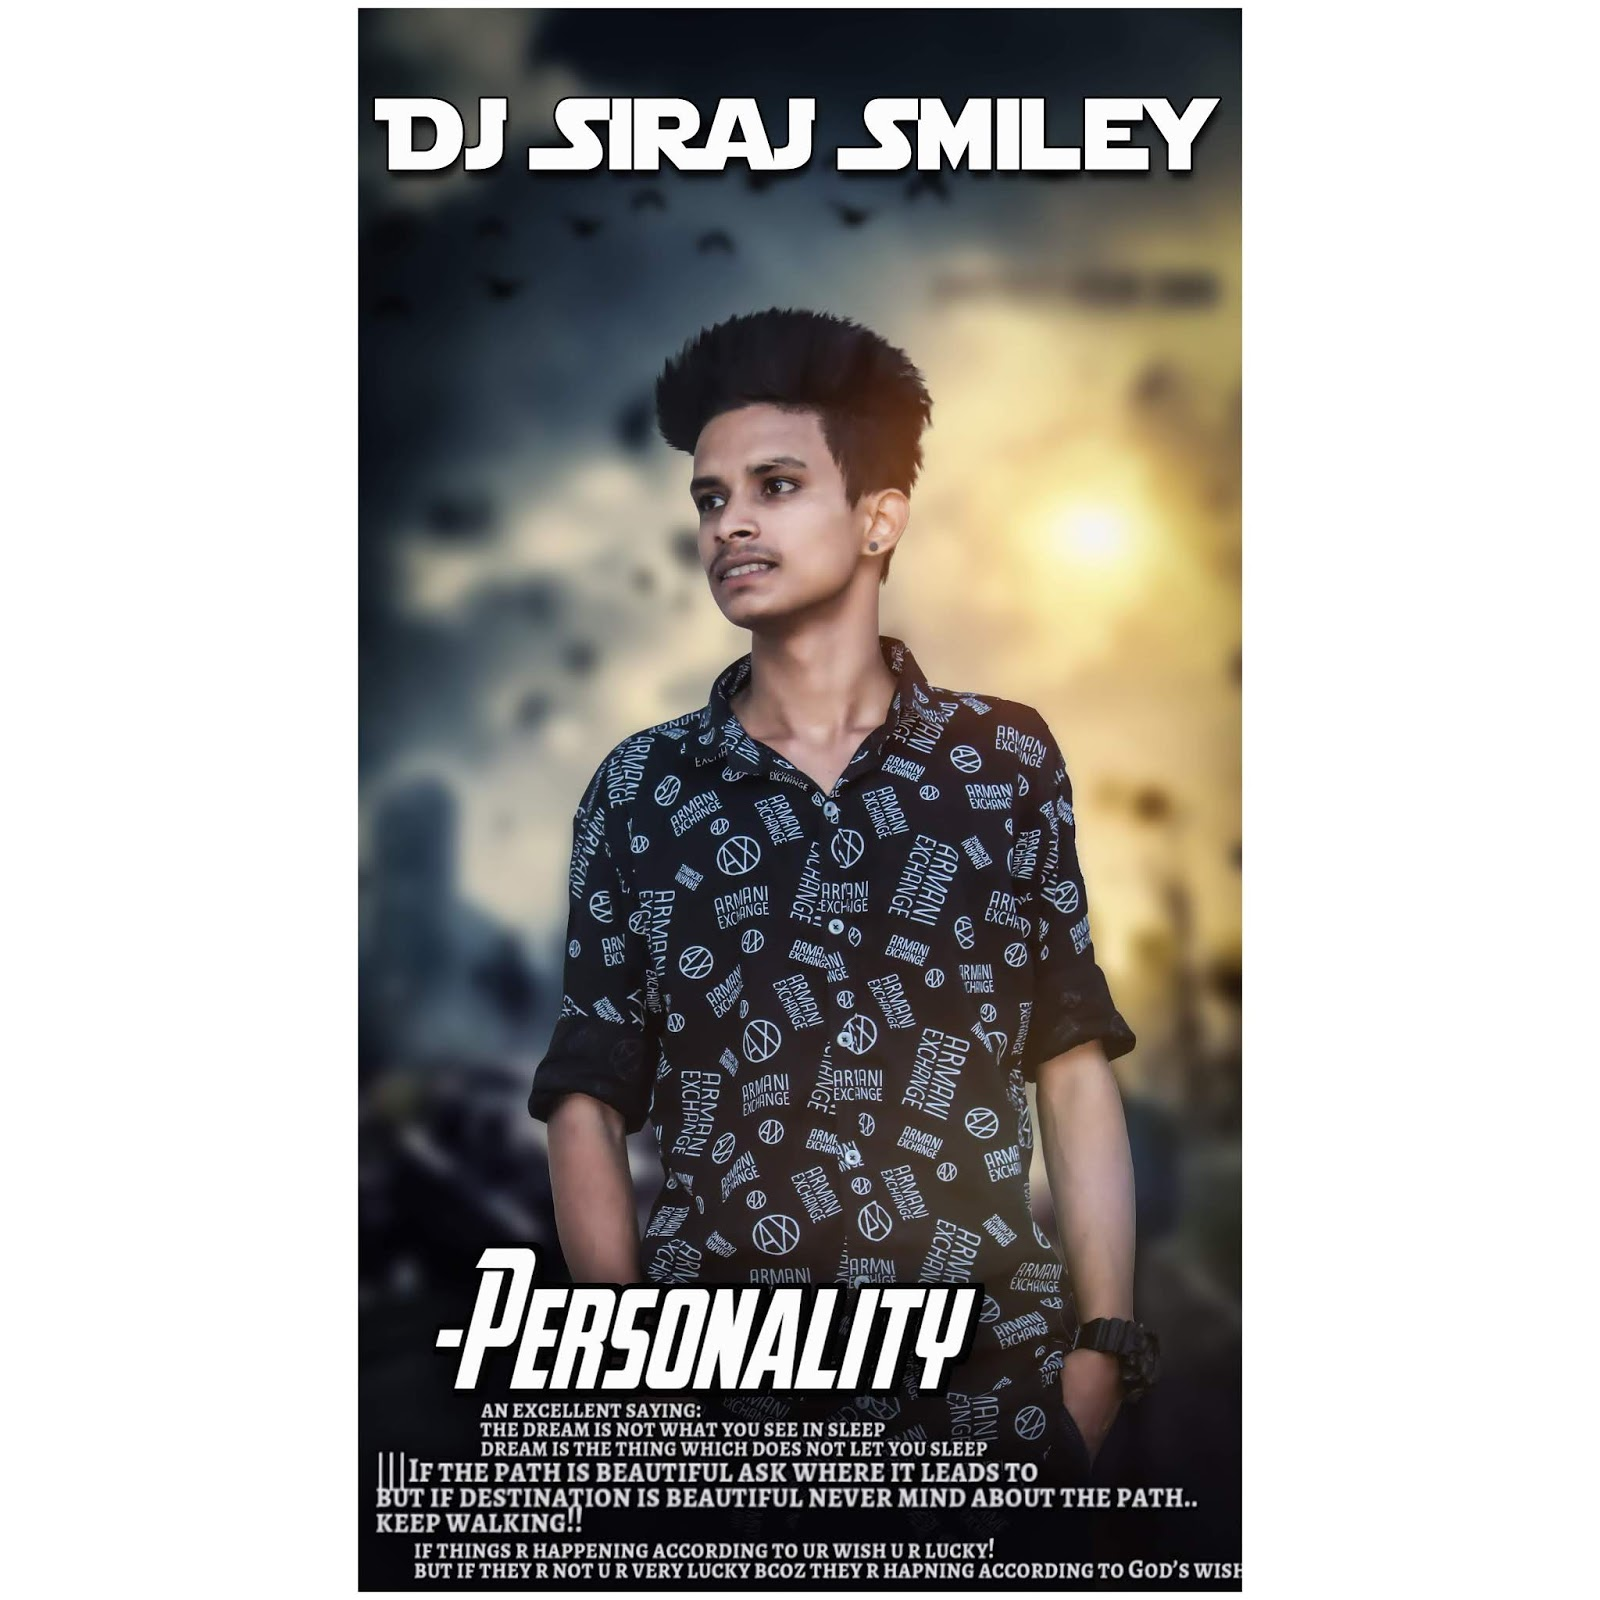 dj siraj smiley new, dj siraj smiley chatal band, dj siraj smiley new song, dj siraj smiley songs download mp3 wap, dj siraj smiley songs download, dj siraj smiley dj office, dj siraj smiley soundcloud, dj siraj smiley 2019, dj siraj smiley songs, dj siraj smiley download, dj siraj smiley dj songs, dj siraj smiley songs download mp3, dj siraj smiley dj office in, dj siraj smiley mp3 songs, dj siraj smiley new songs download, dj siraj smiley new songs, dj siraj smiley 2019 songs download